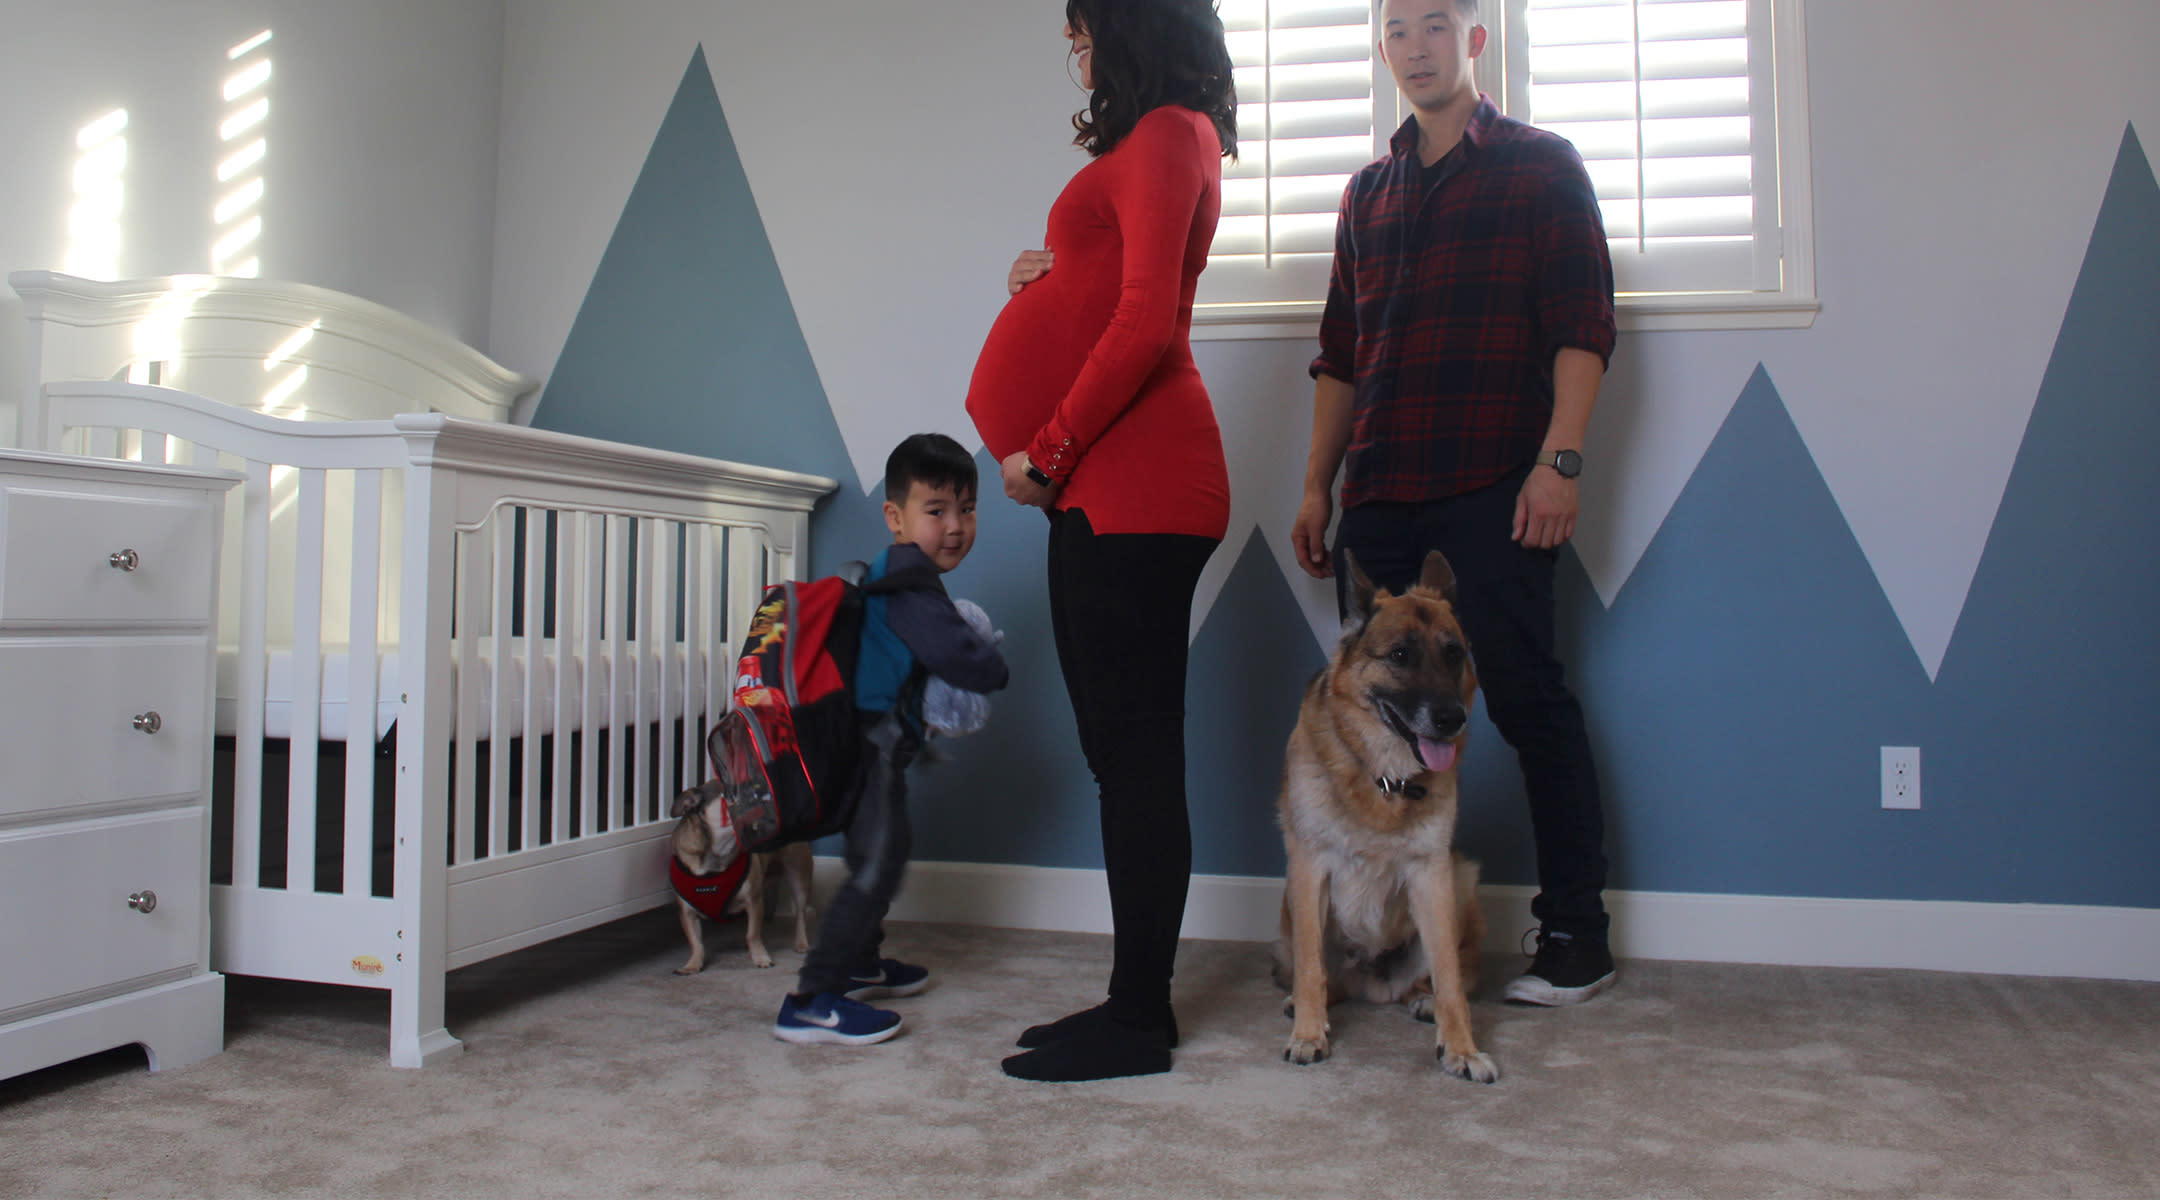 Time Lapse Captures Family's Pregnancy Journey in Two Minutes